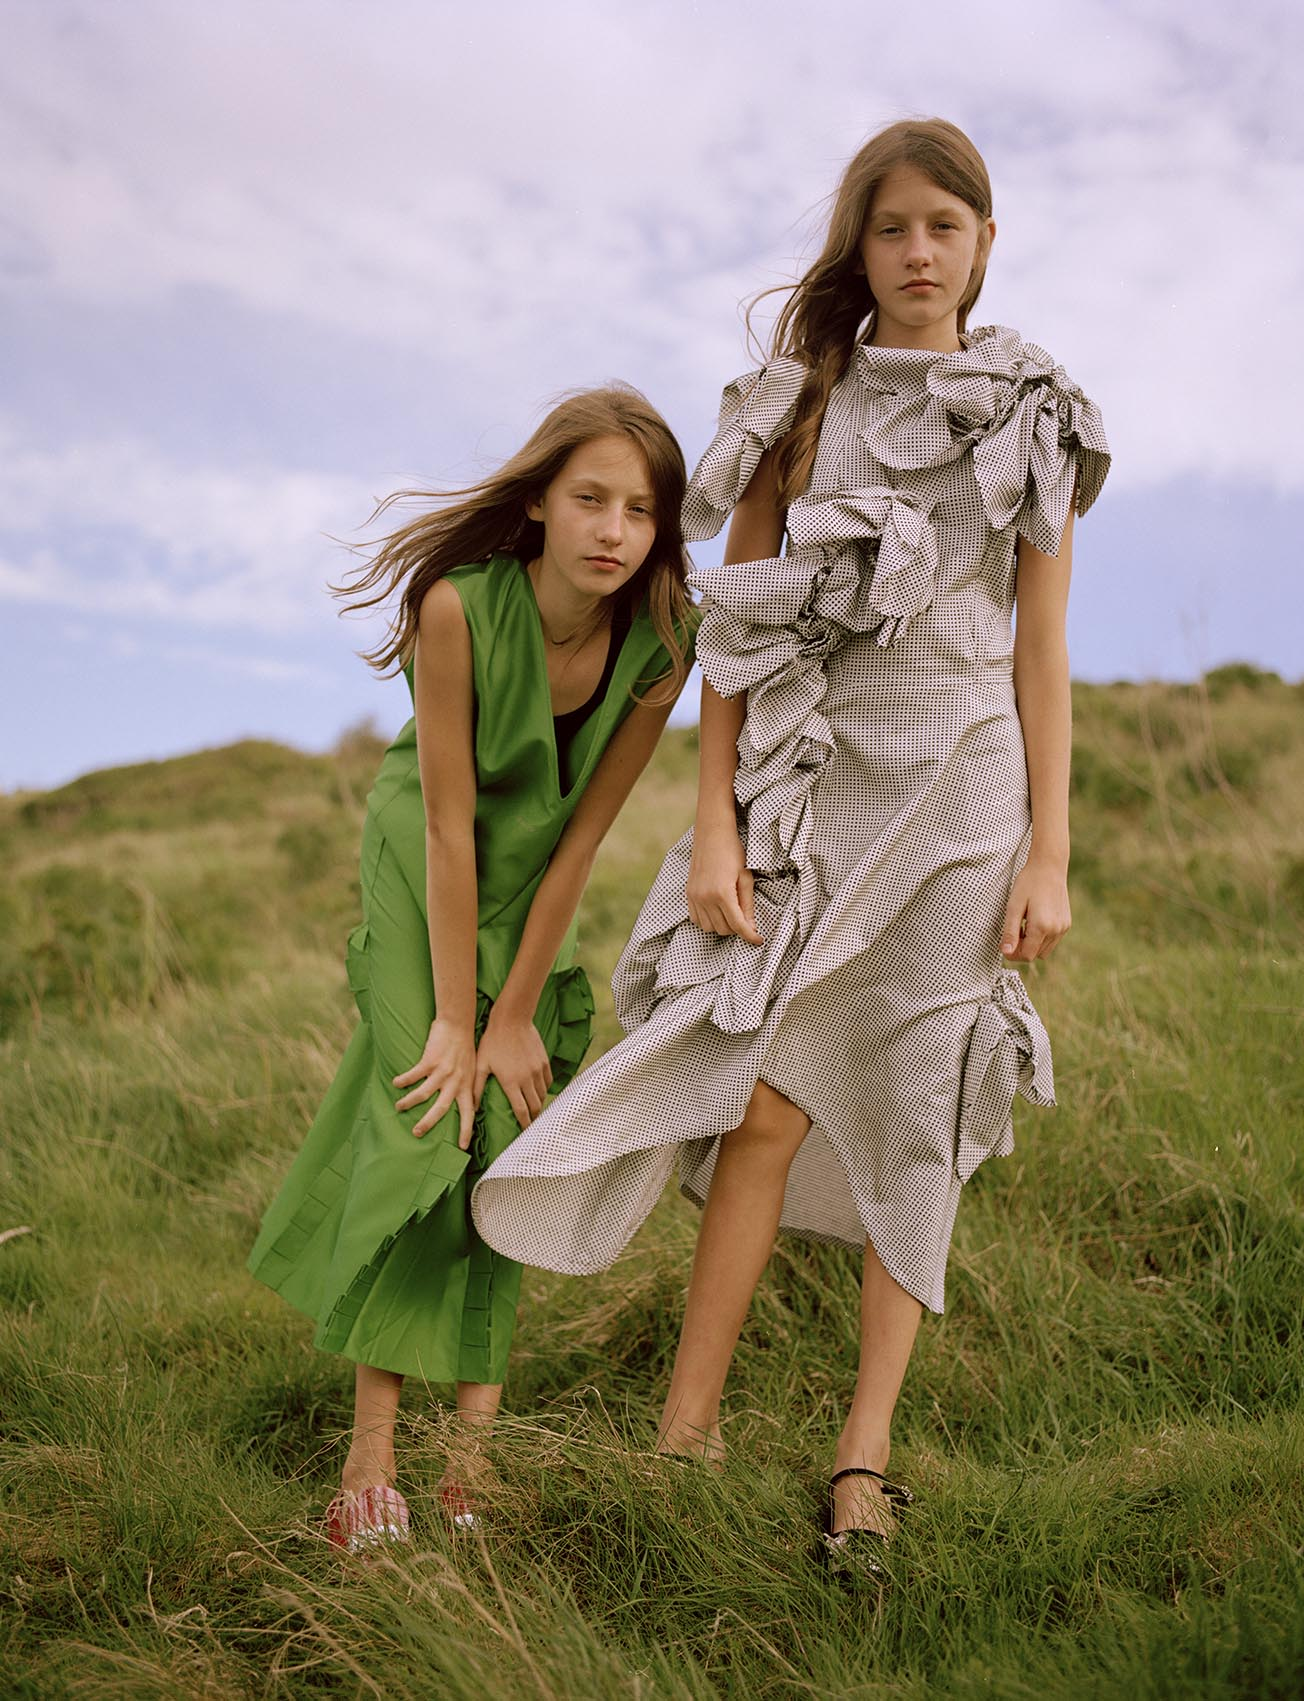 coming-of-age-1-marblemagazine.jpg